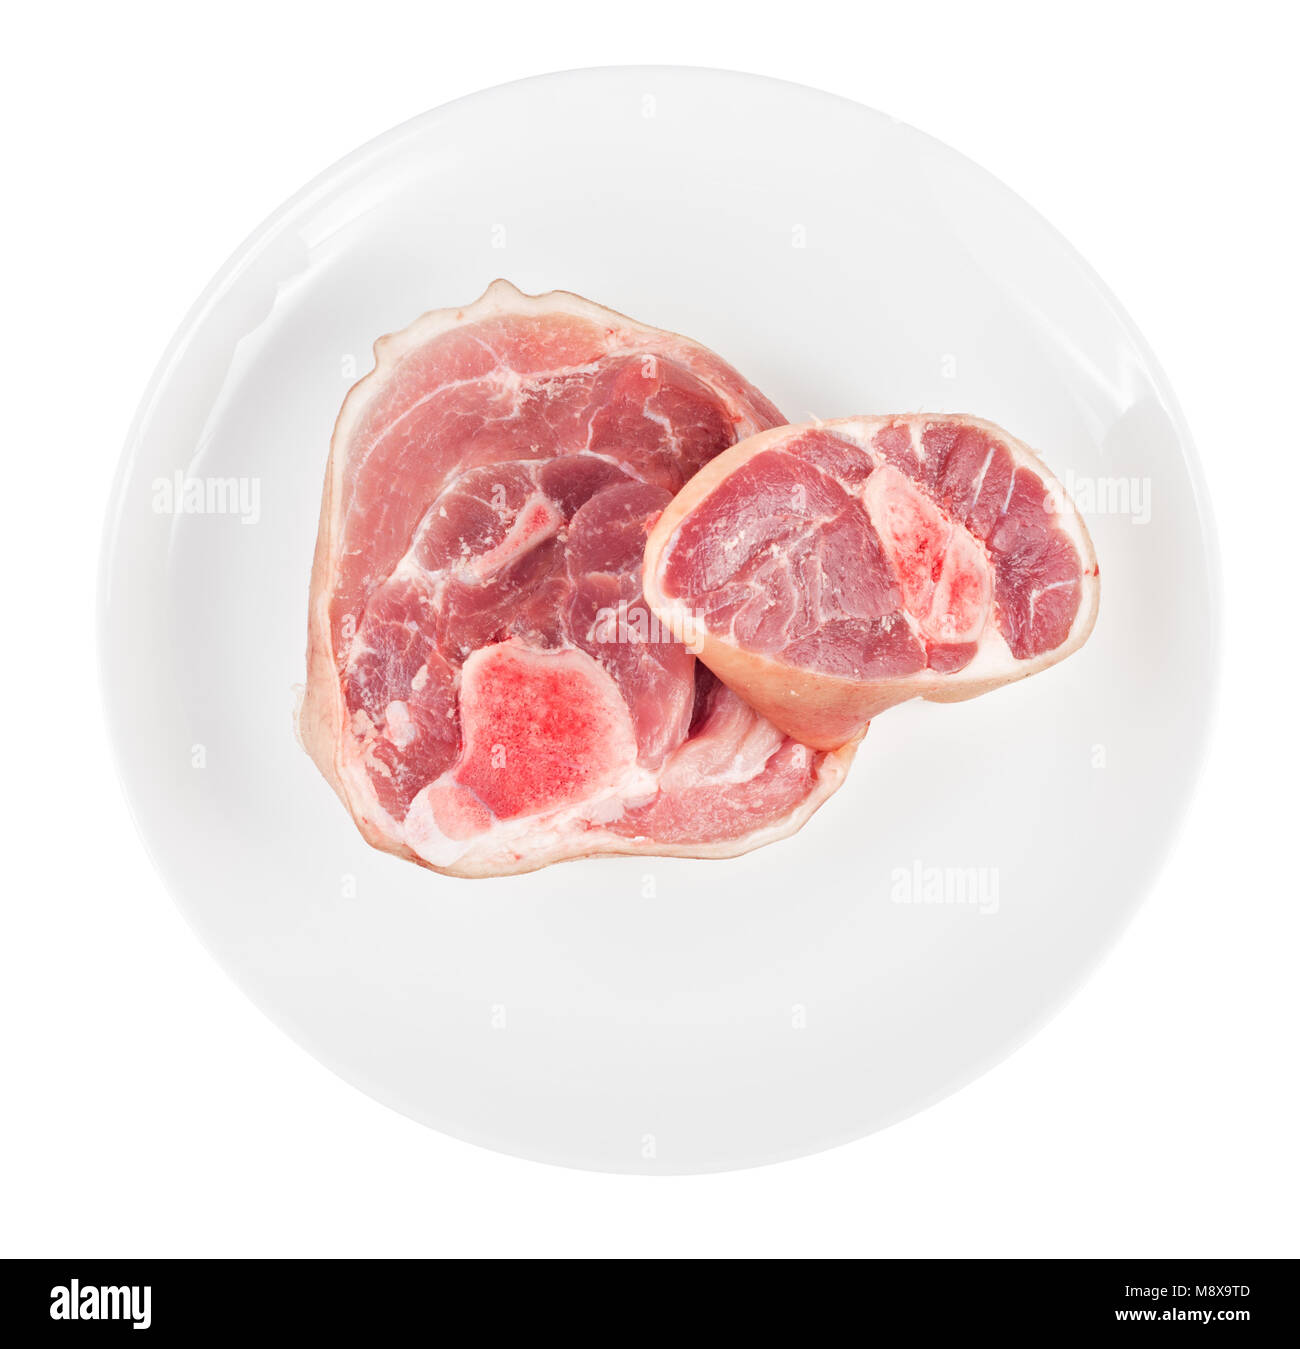 Raw pork knuckle on plate isolated on white background. Top view. - Stock Image